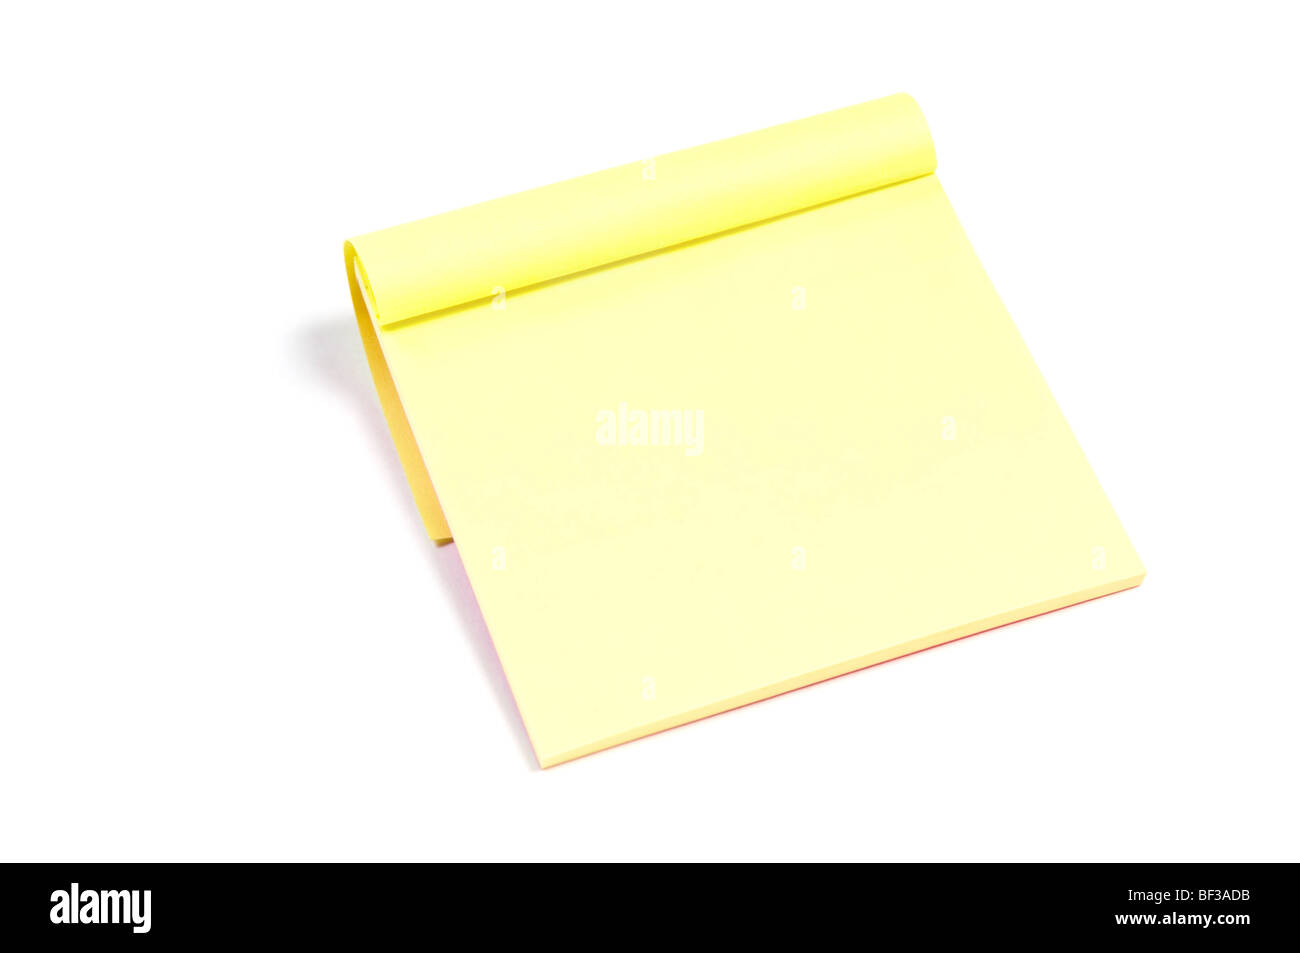 Sticky note pad papier isolated on white Photo Stock